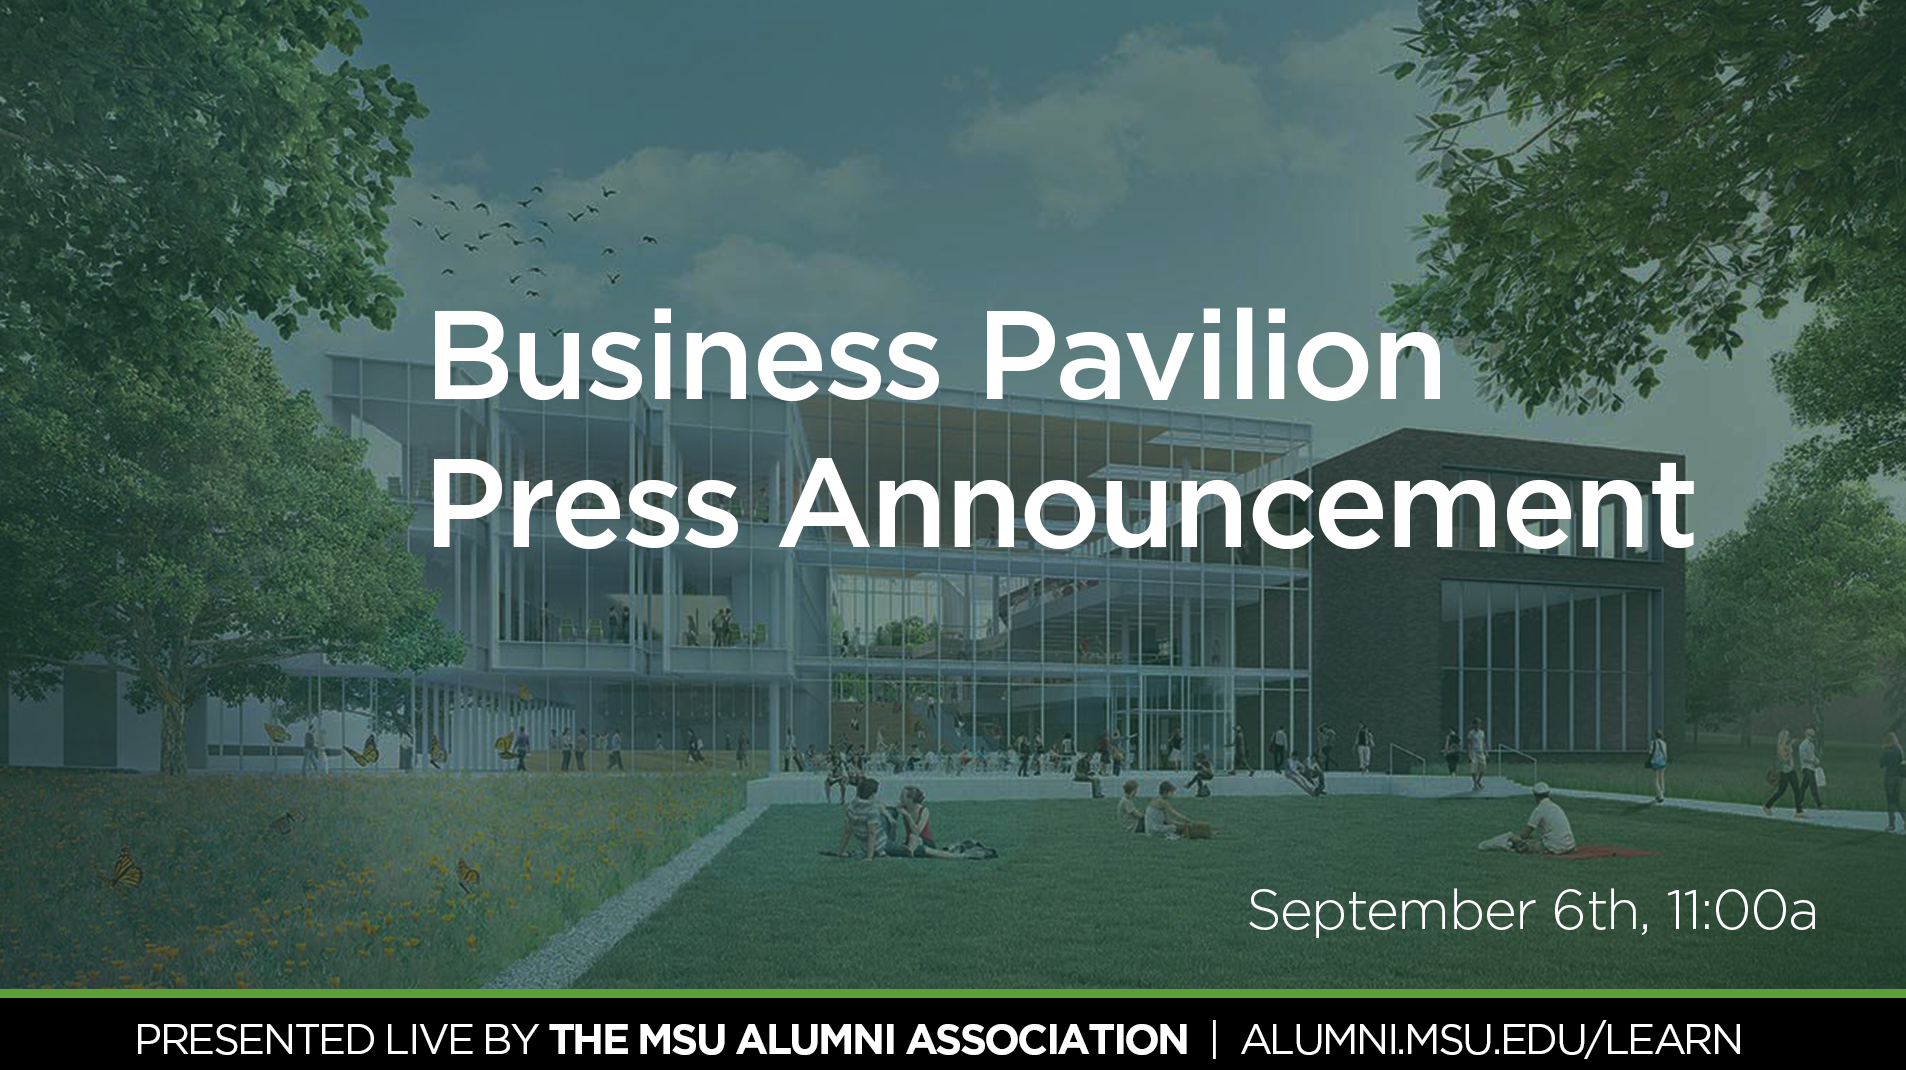 livestream cover image for Business Pavilion Press Announcement